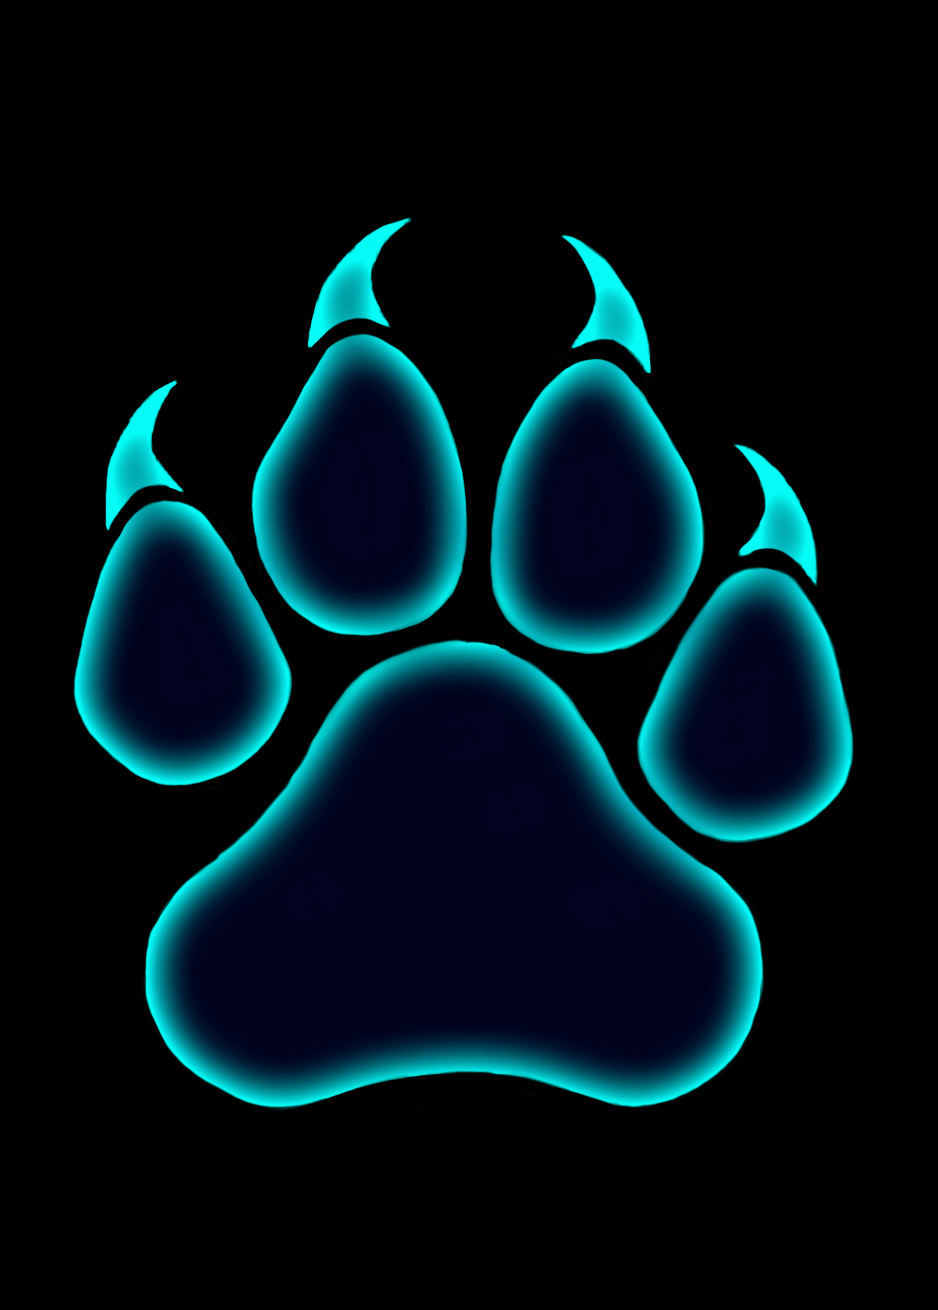 Blysster Press paw print logo